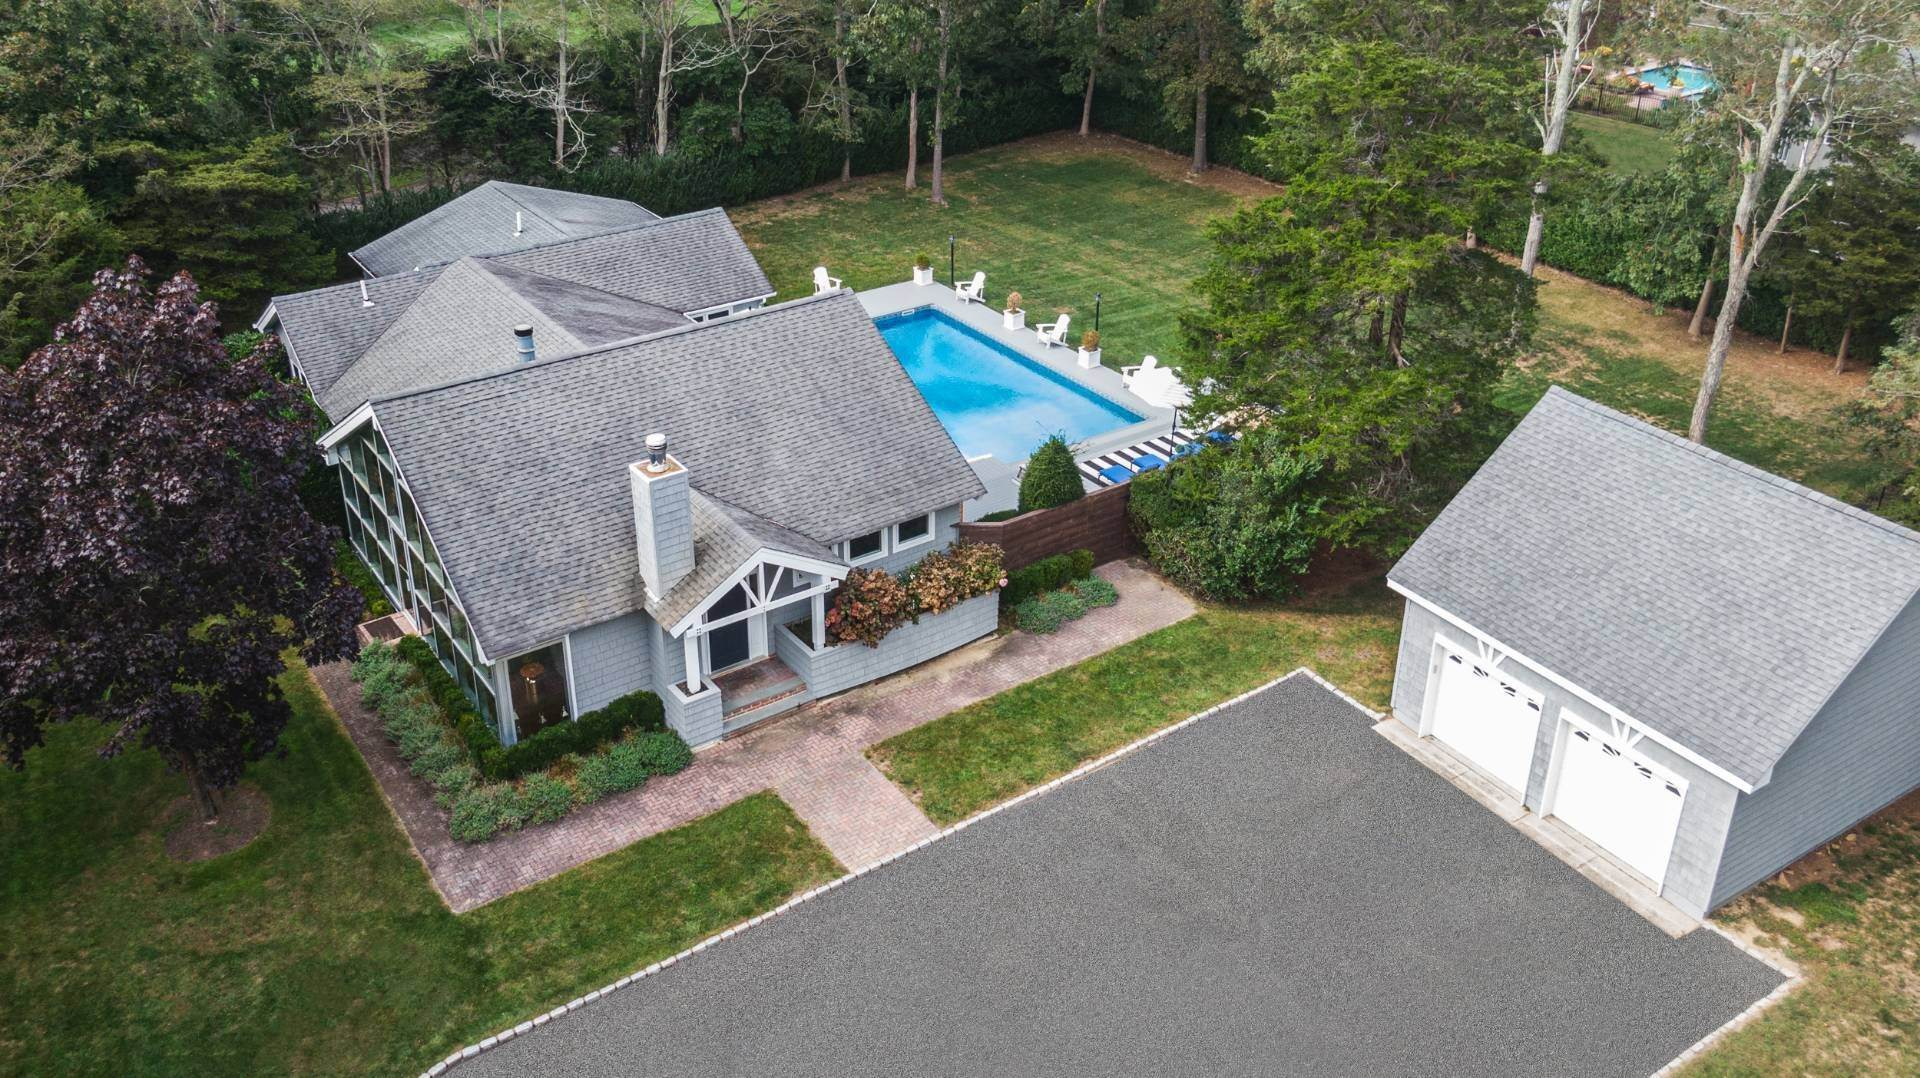 16. Single Family Home at Westhampton 4 Bedroom Modern With Pool Westhampton, NY 11977